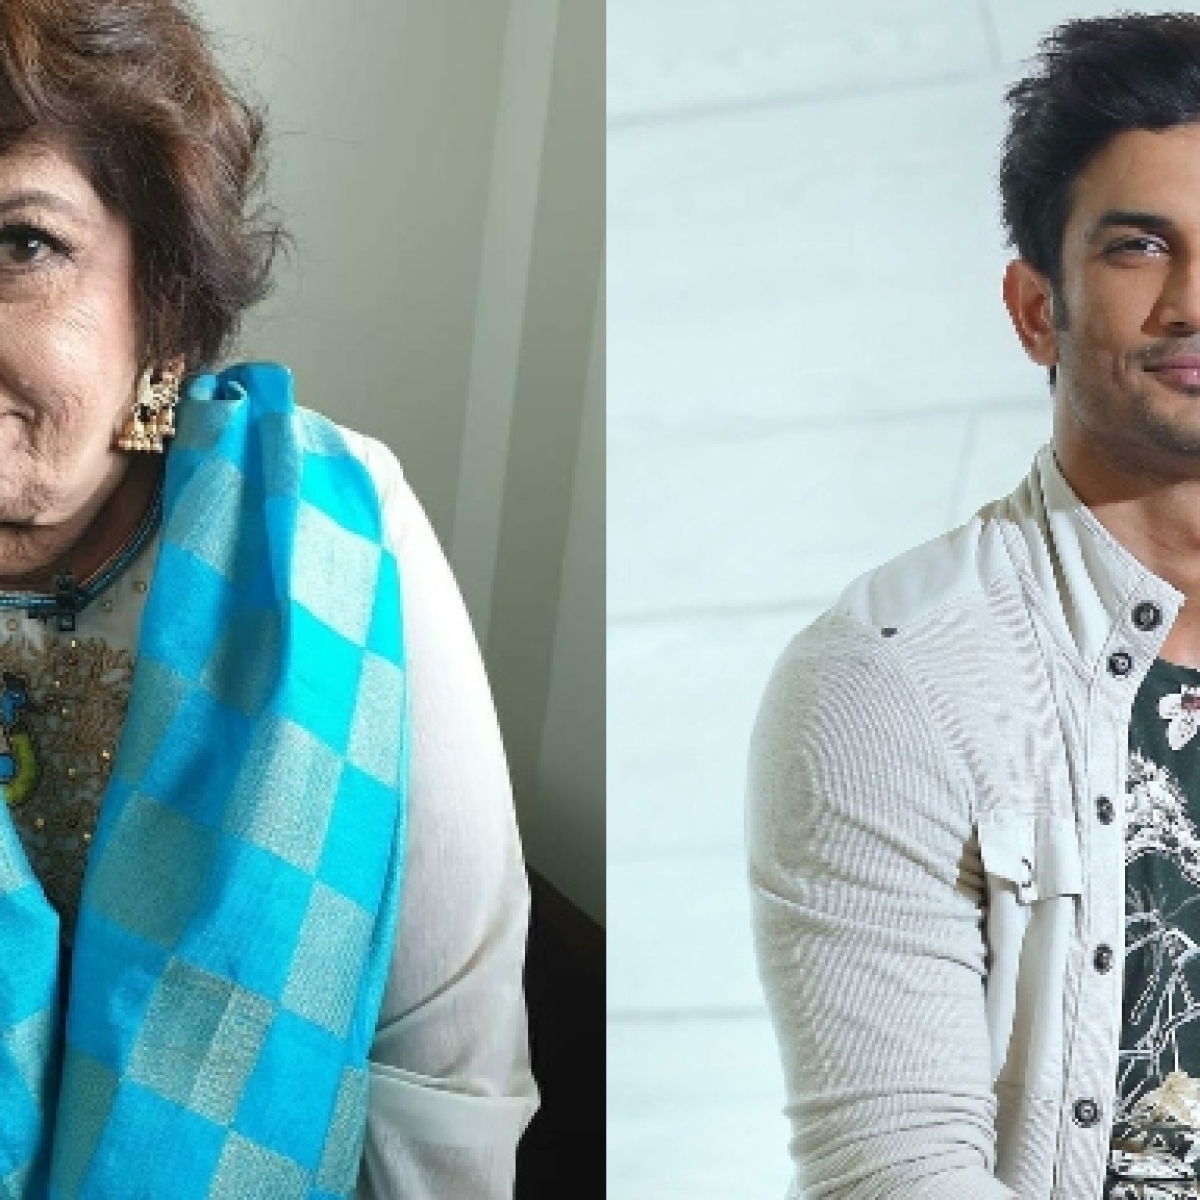 Saroj Khan's last Instagram post has a connection to Sushant Singh Rajput